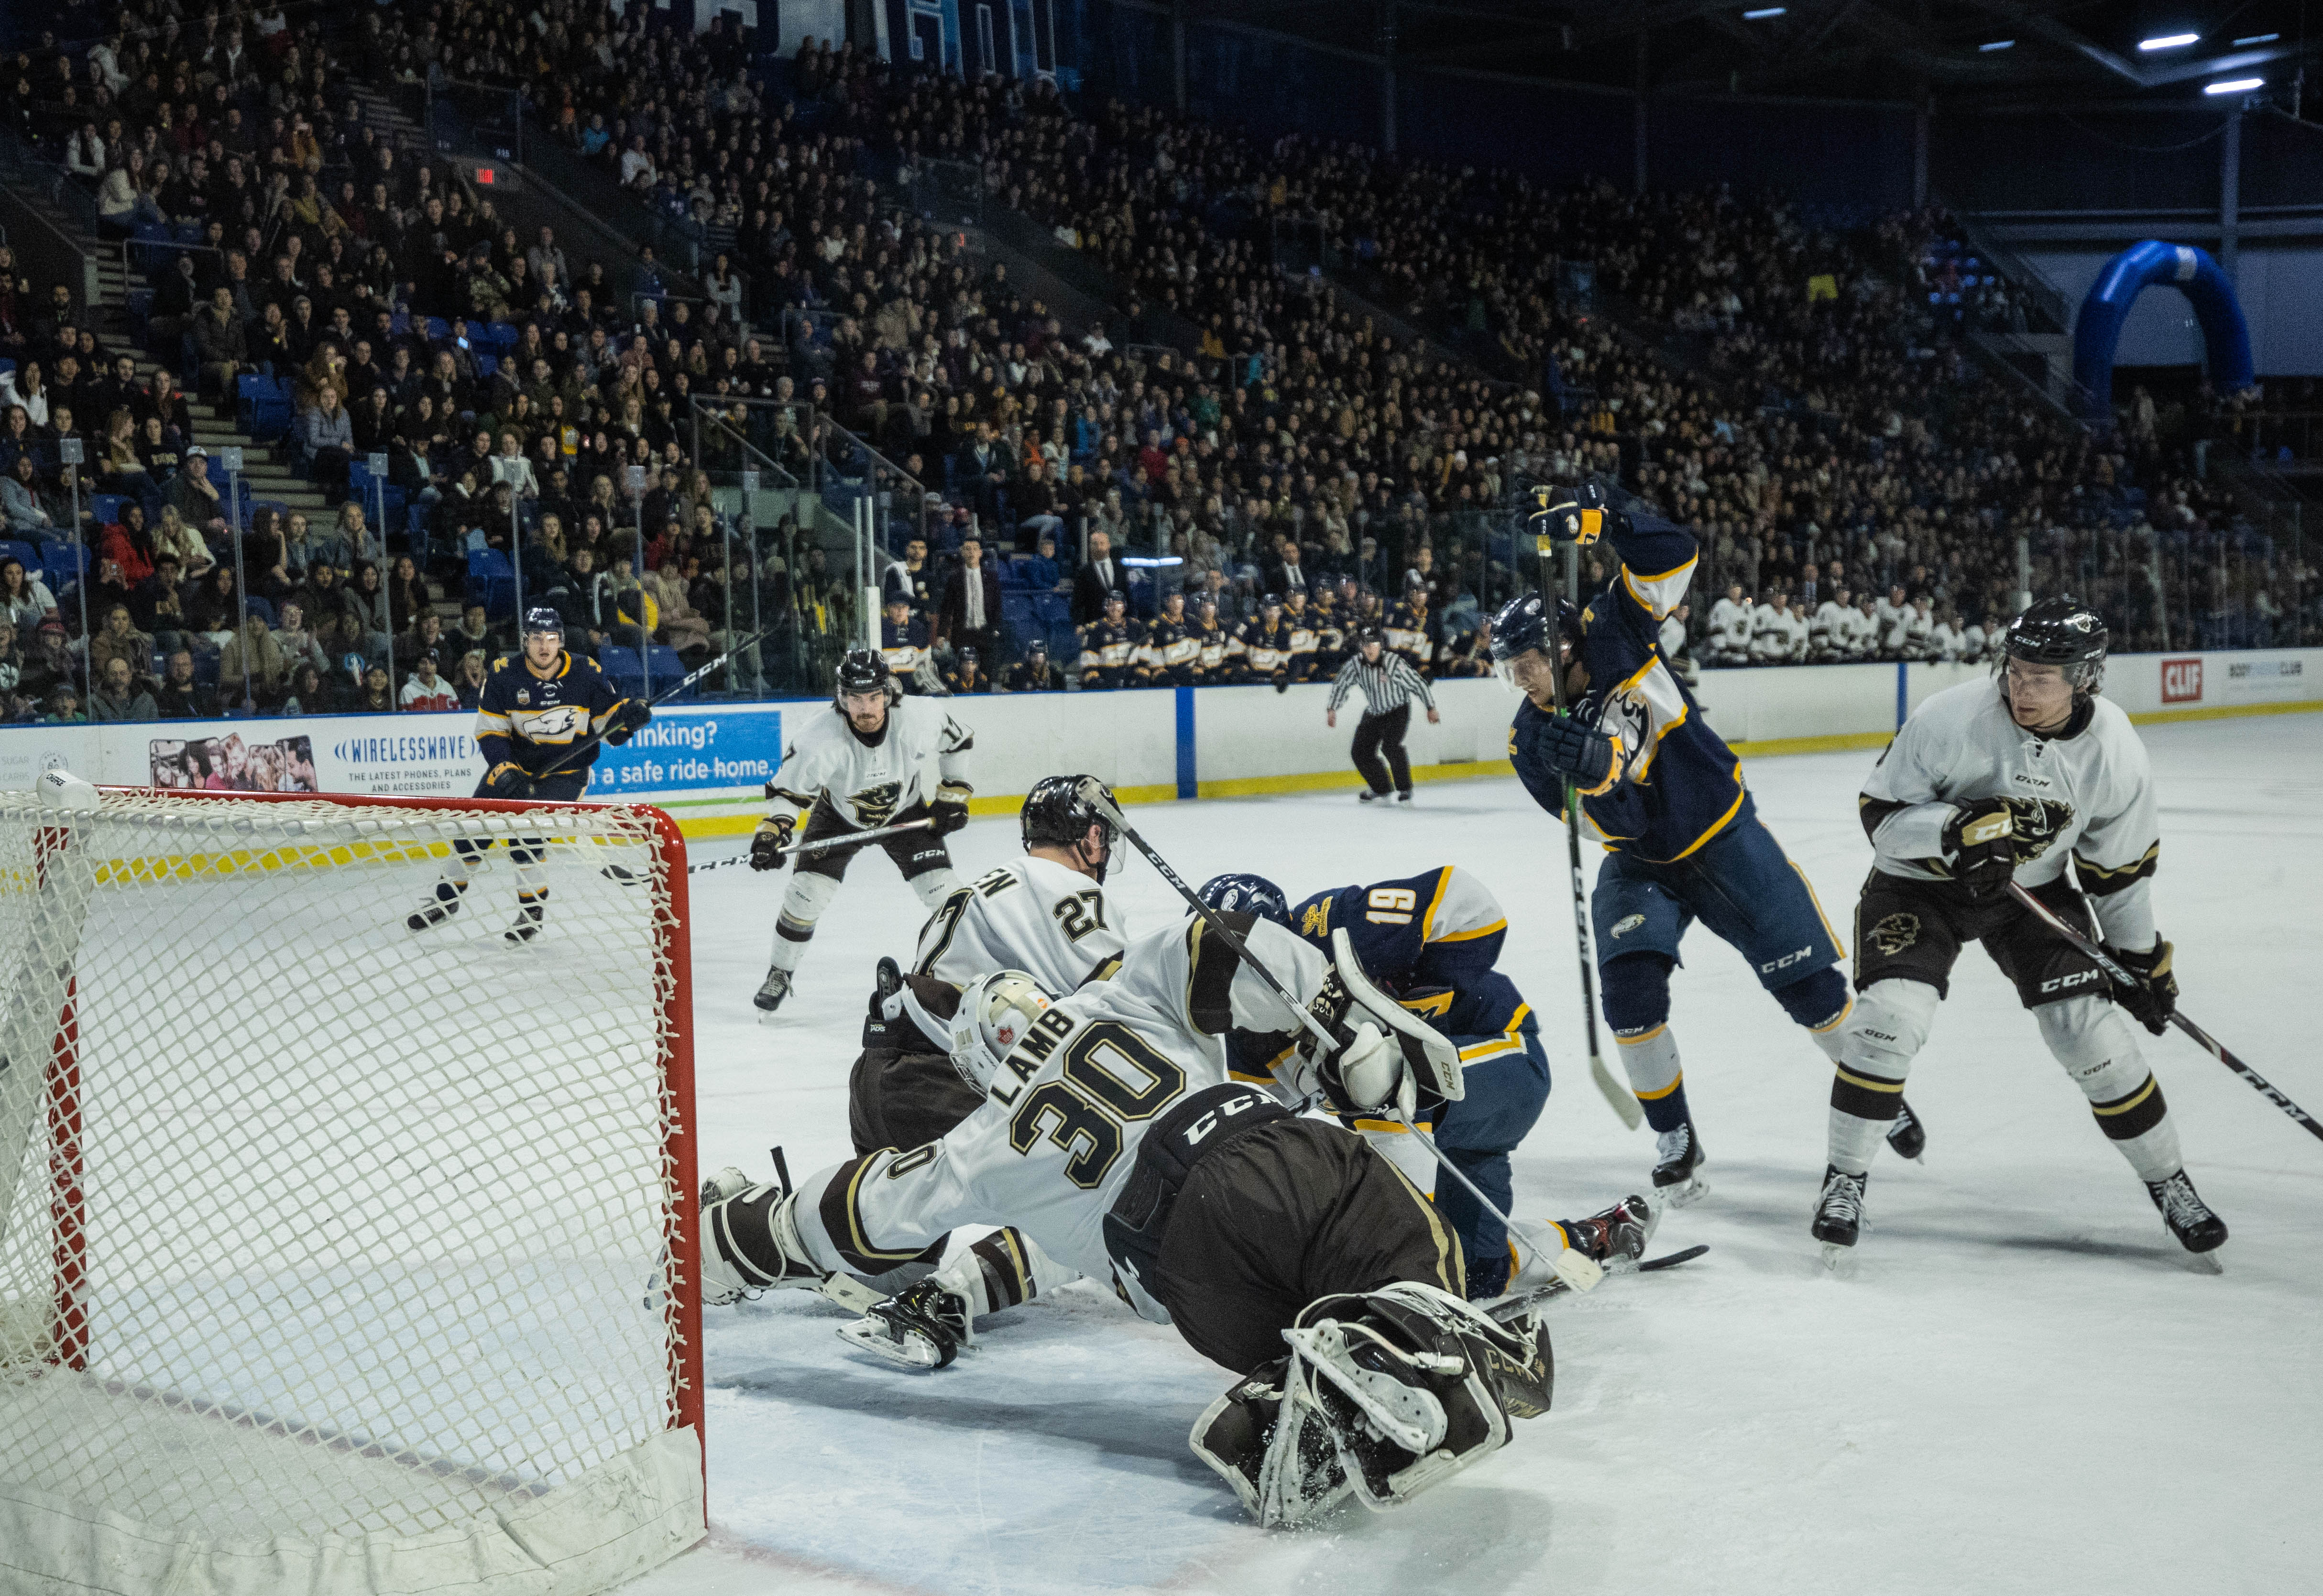 Manitoba goalie Riley Lamb makes a diving save midway through the game.